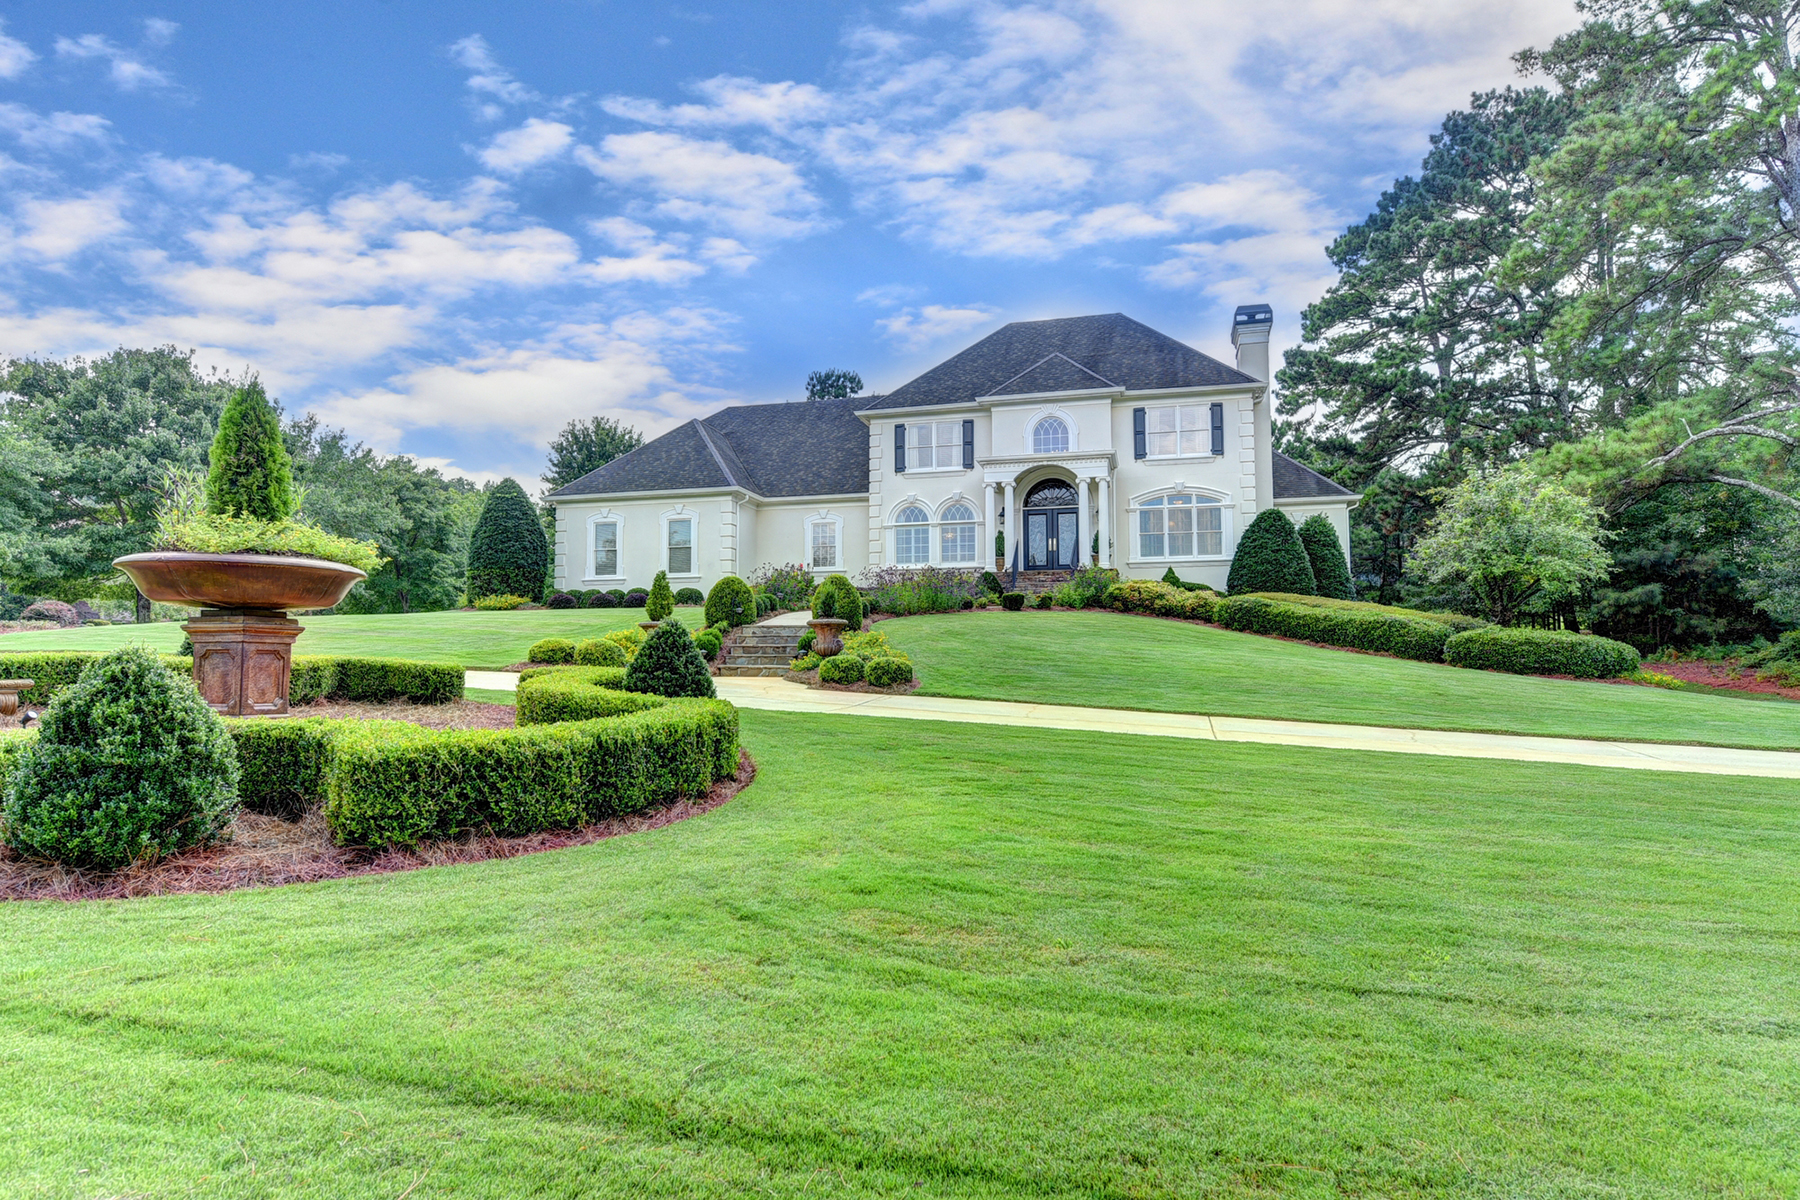 Single Family Home for Sale at Grand Estate Situated On The Corner Of Two Fabulous Lots Adjacent To Greenspace 8440 Saint Marlo Fairway Dr Duluth, Georgia 30097 United States